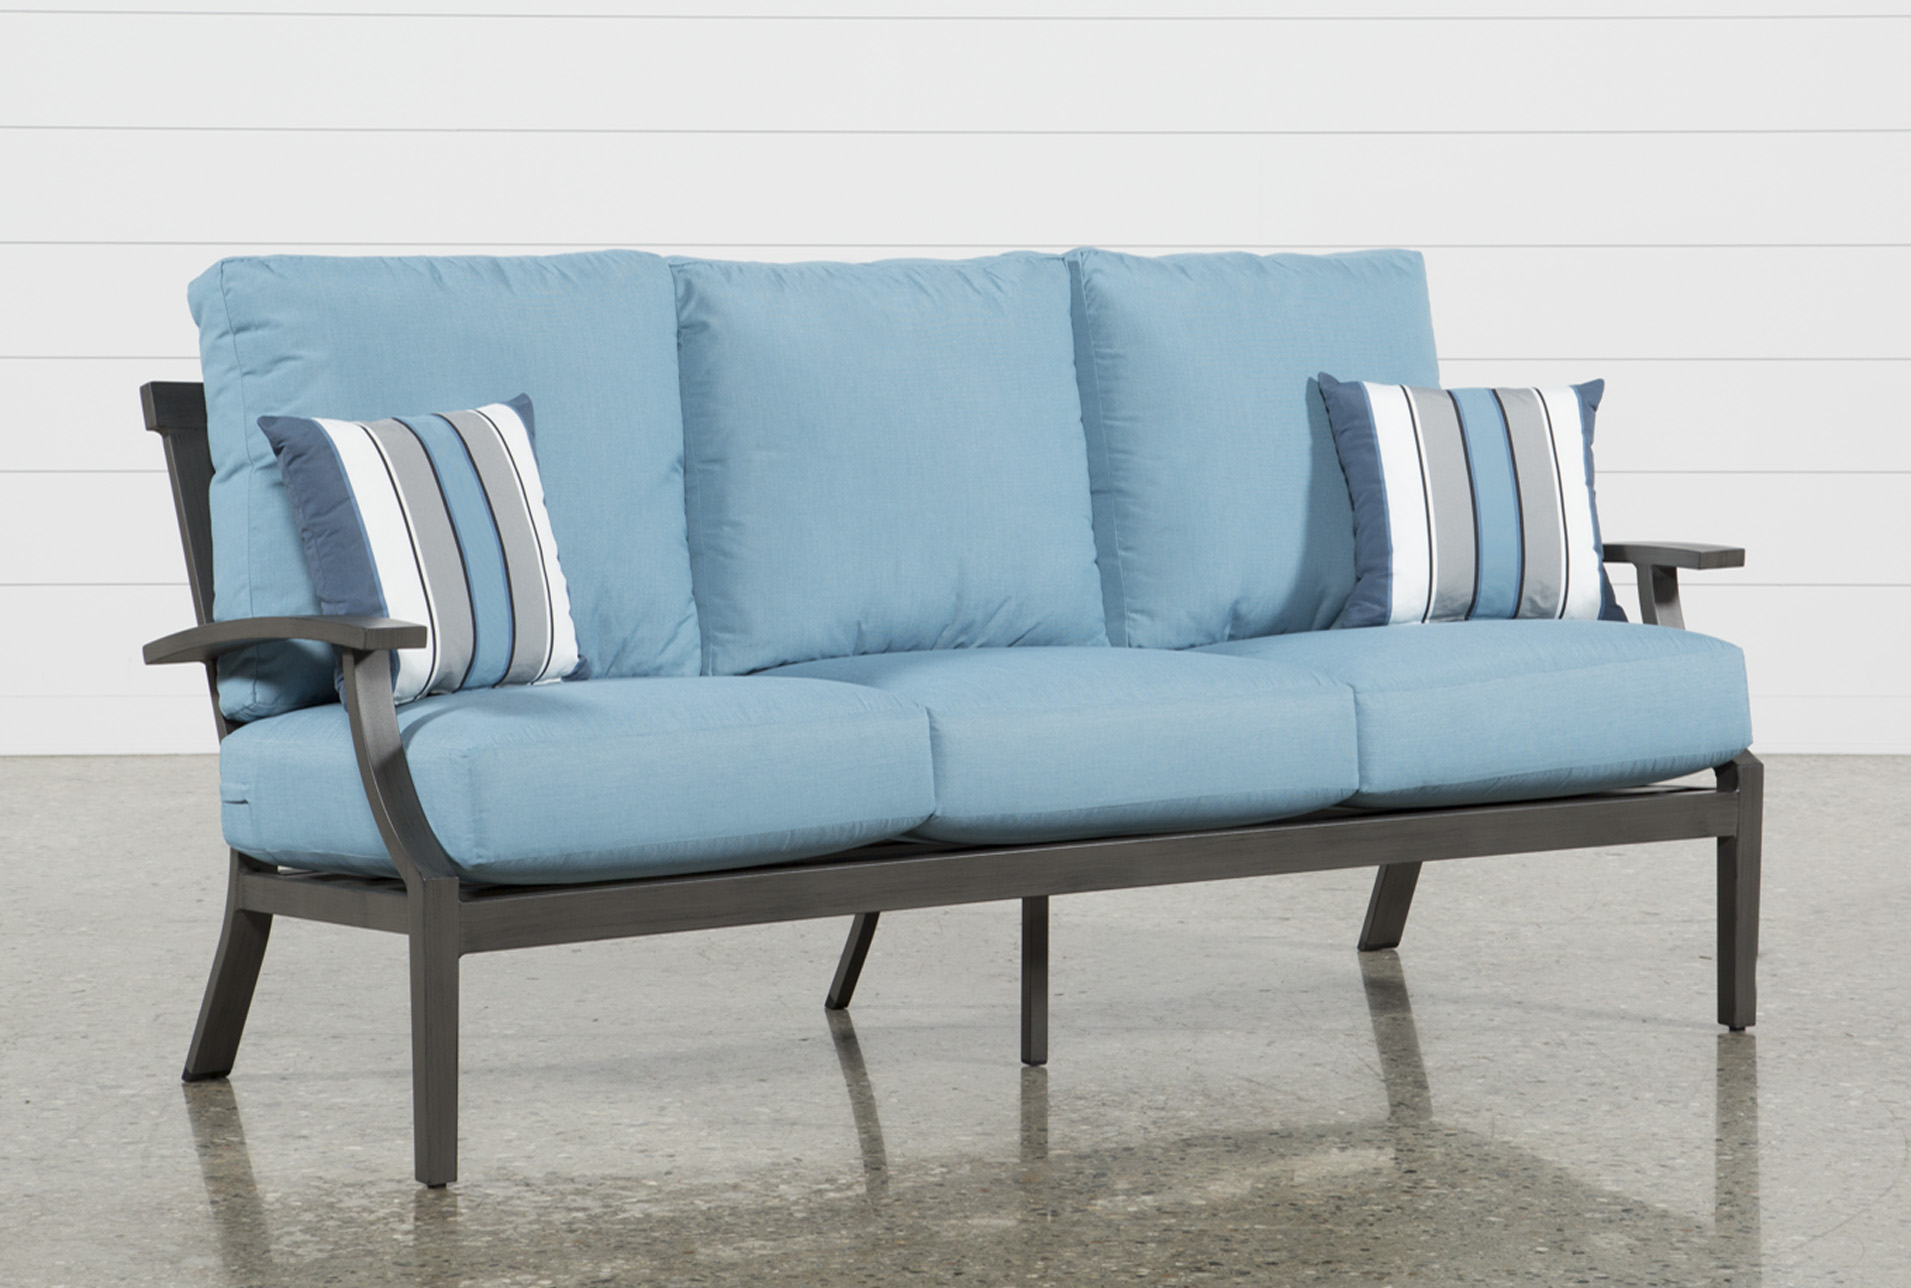 Gentil Outdoor Martinique II Aqua Sofa (Qty: 1) Has Been Successfully Added To  Your Cart.